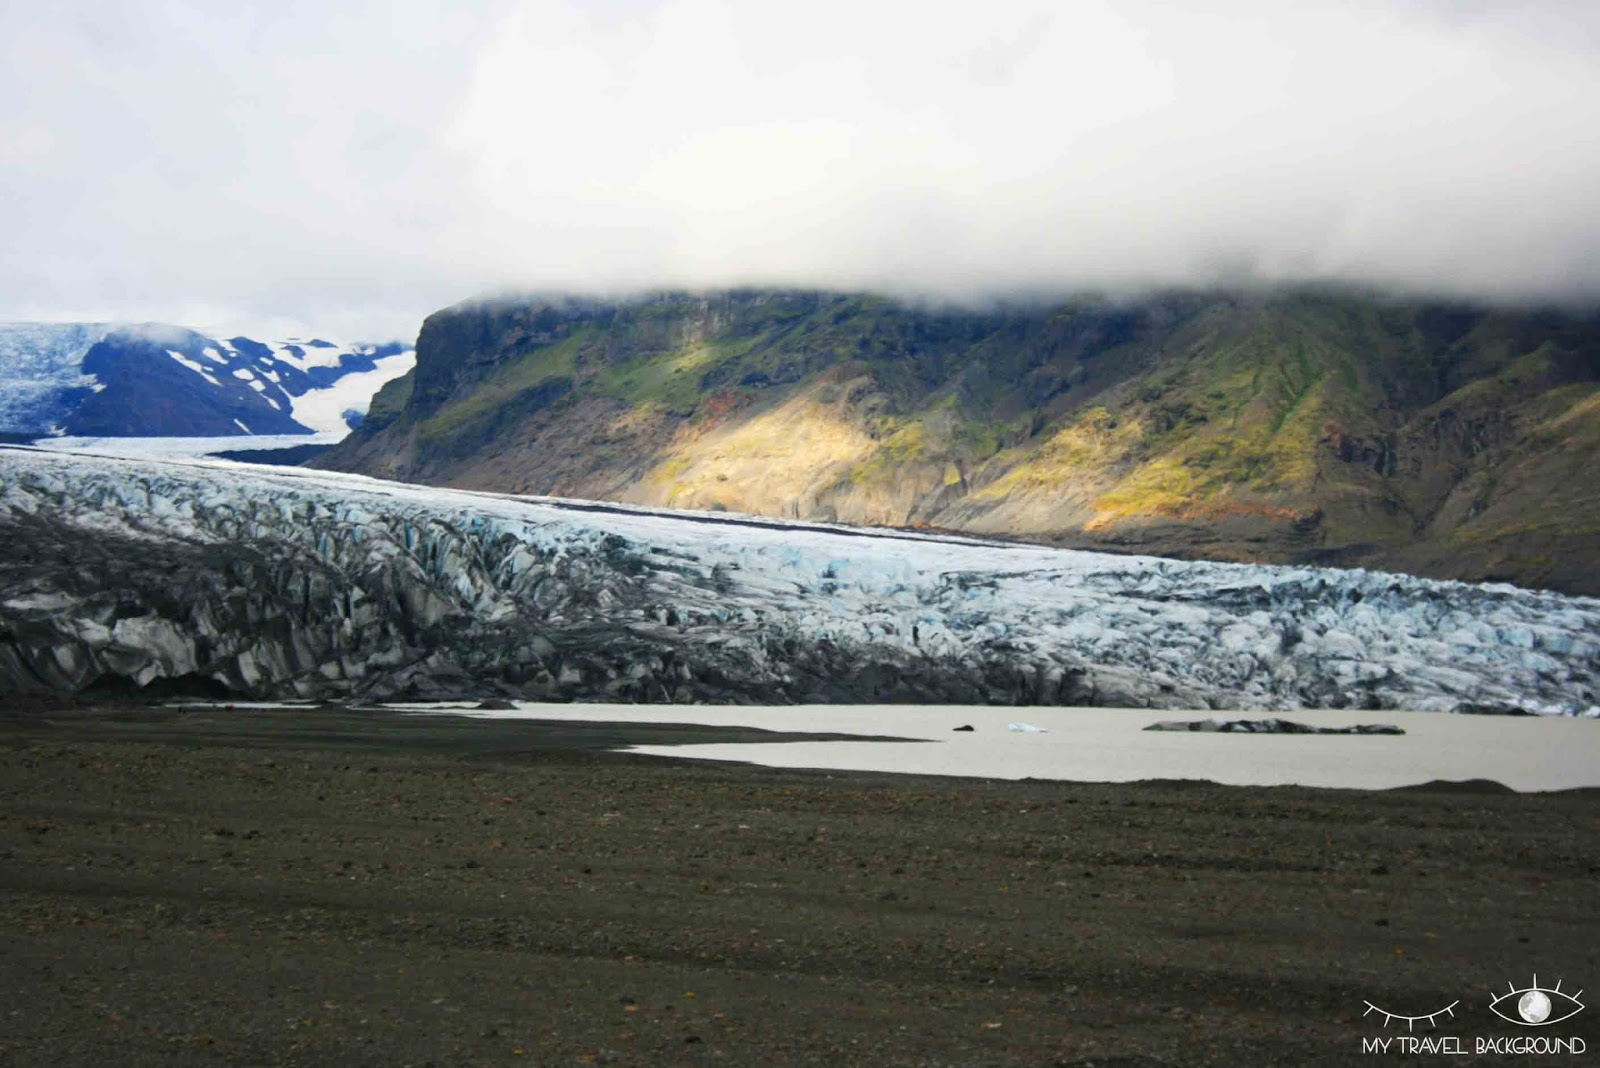 My Travel Background : Glaciers et icebergs dans le Sud de l'Islande - Skatafellsjökull